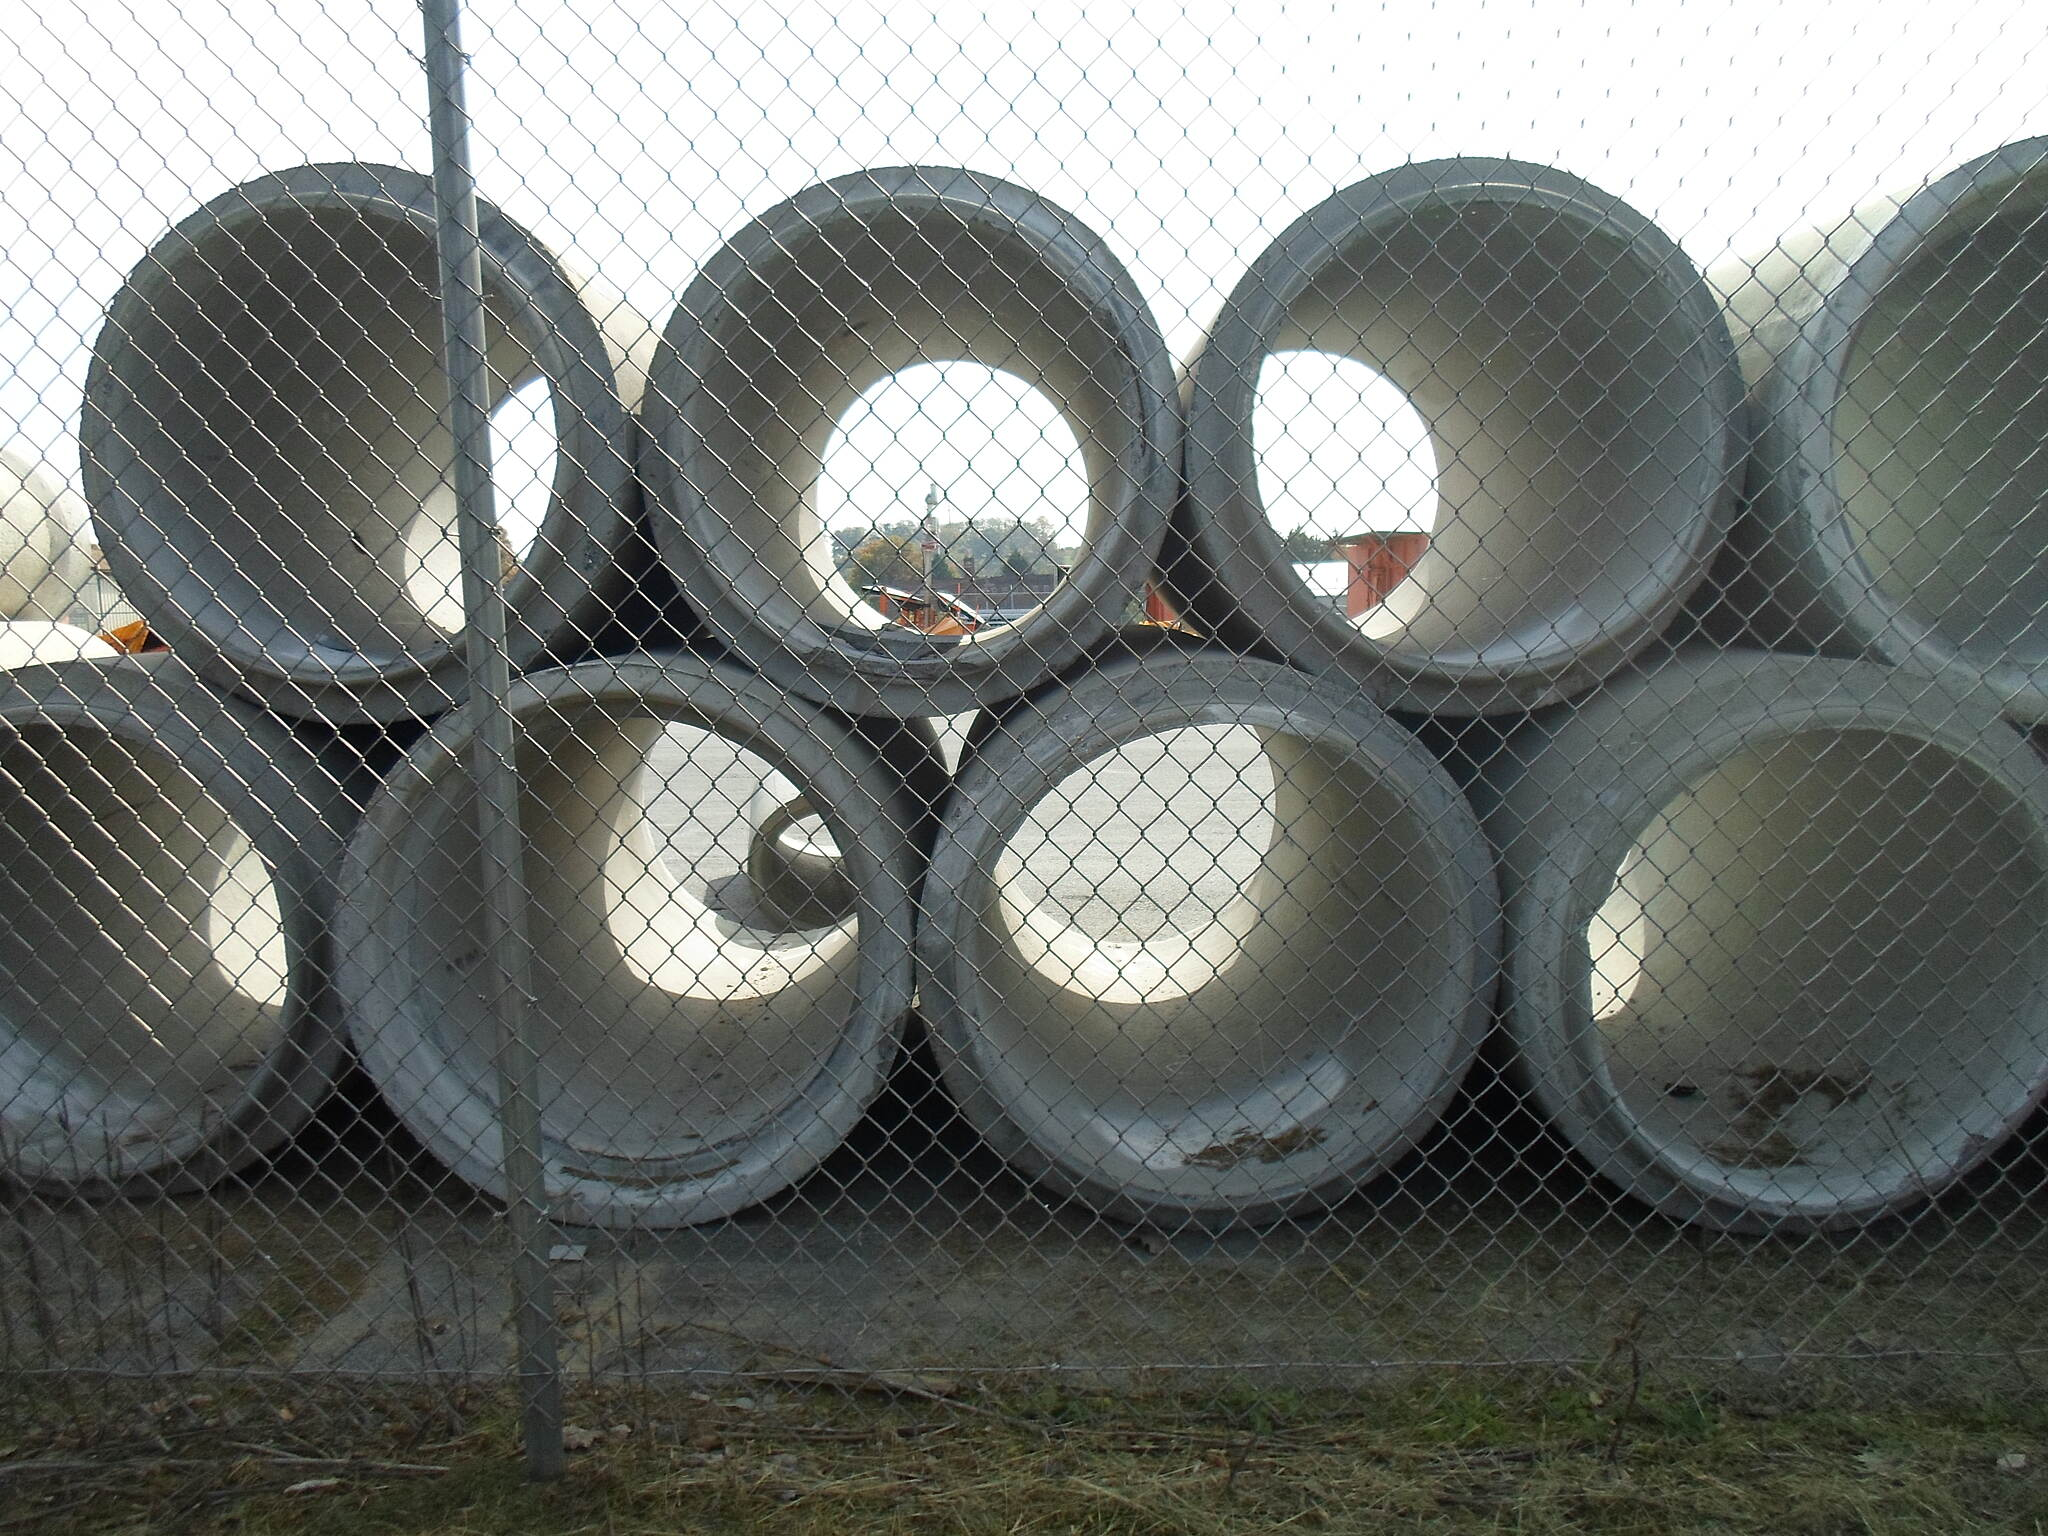 Capital Area Greenbelt Capital Area Greenbelt Giant pipes at the Penn DOT facility on the north side of the city, seen from the trail through a chainlink fence.